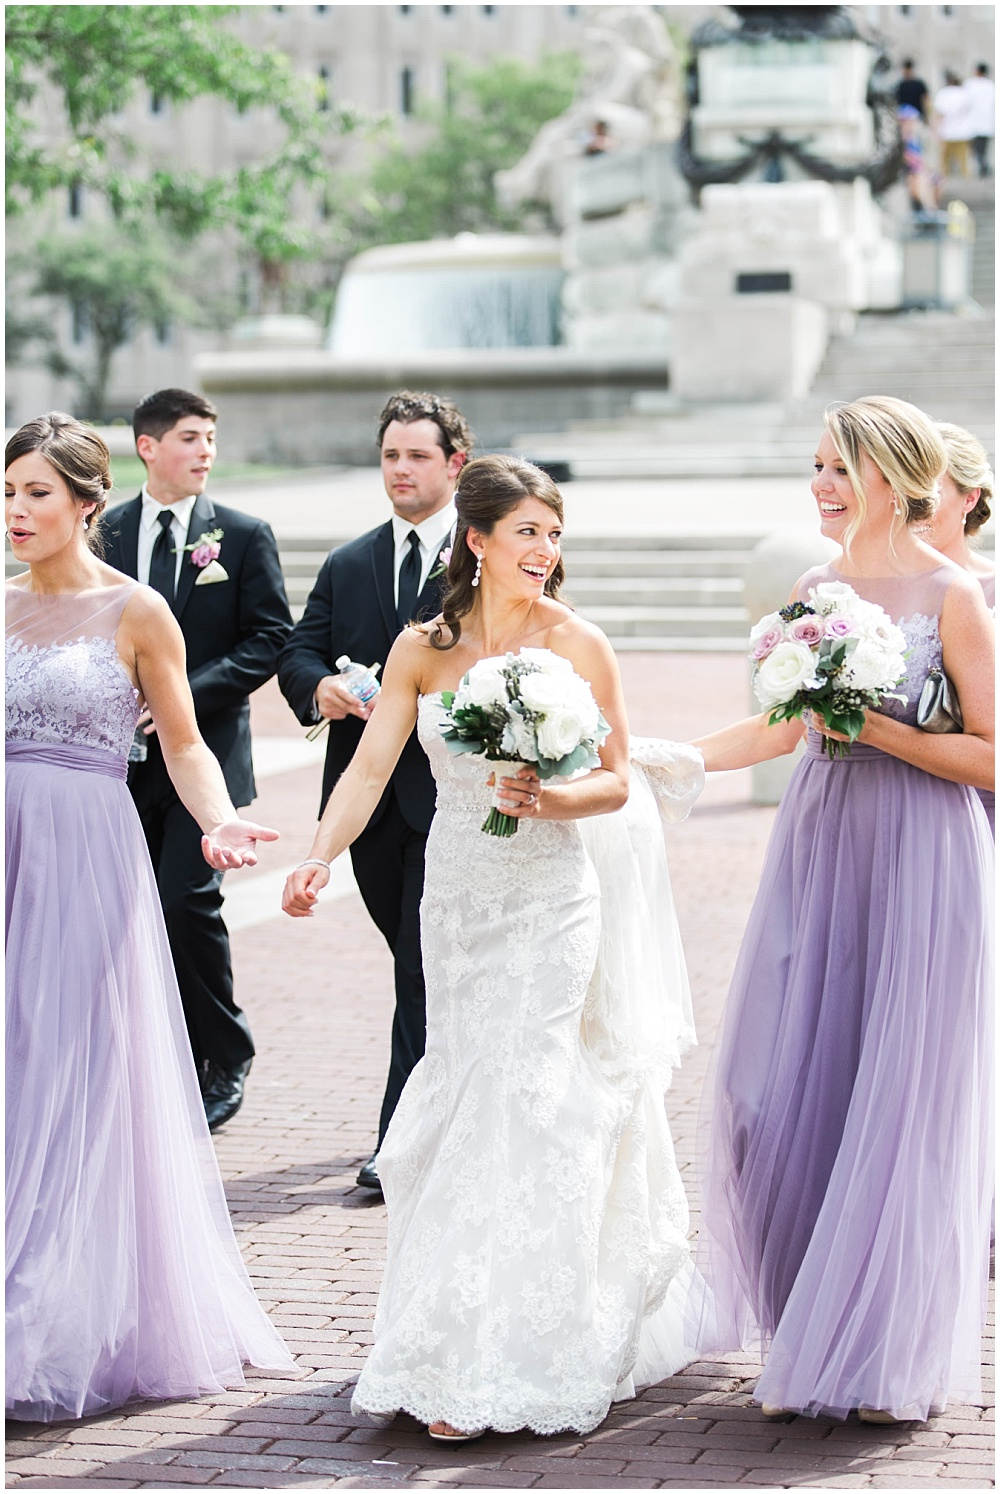 Bridal Party fun walking the streets of downtown | D'Amore Wedding by Ivan & Louise Images & Jessica Dum Wedding Coordination